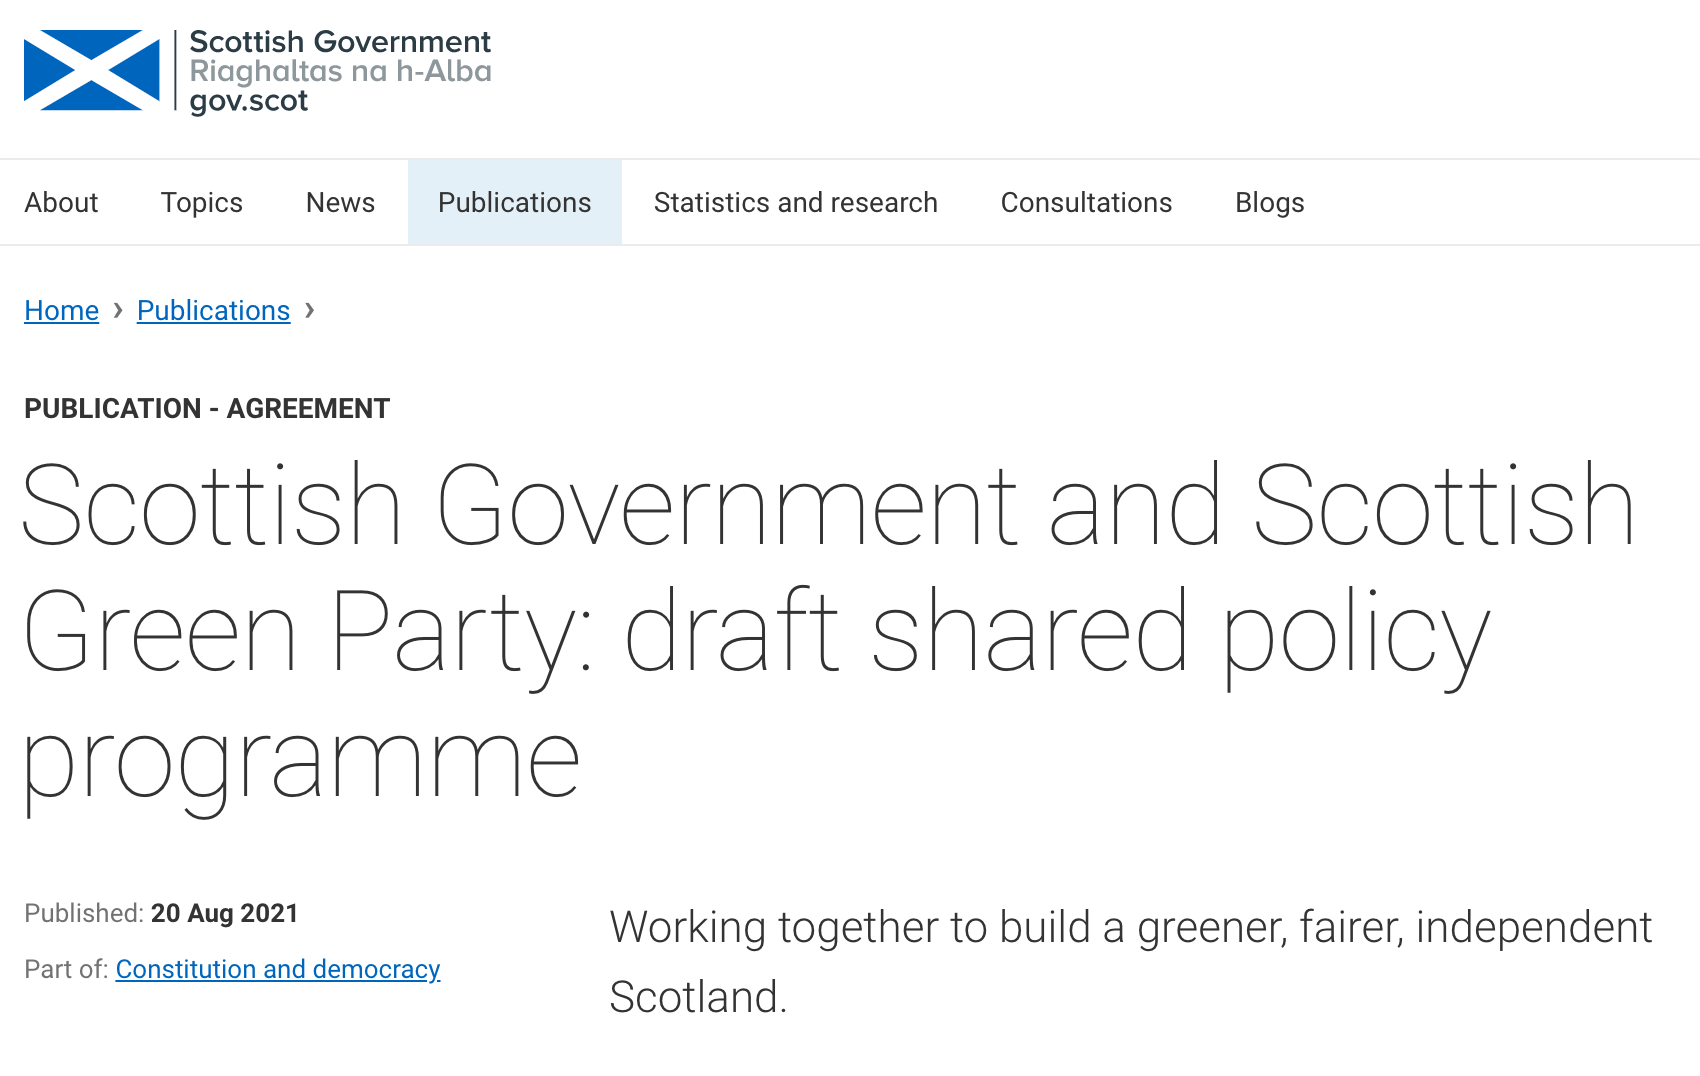 Scot_Gov_Greens_Shared_Policy.png